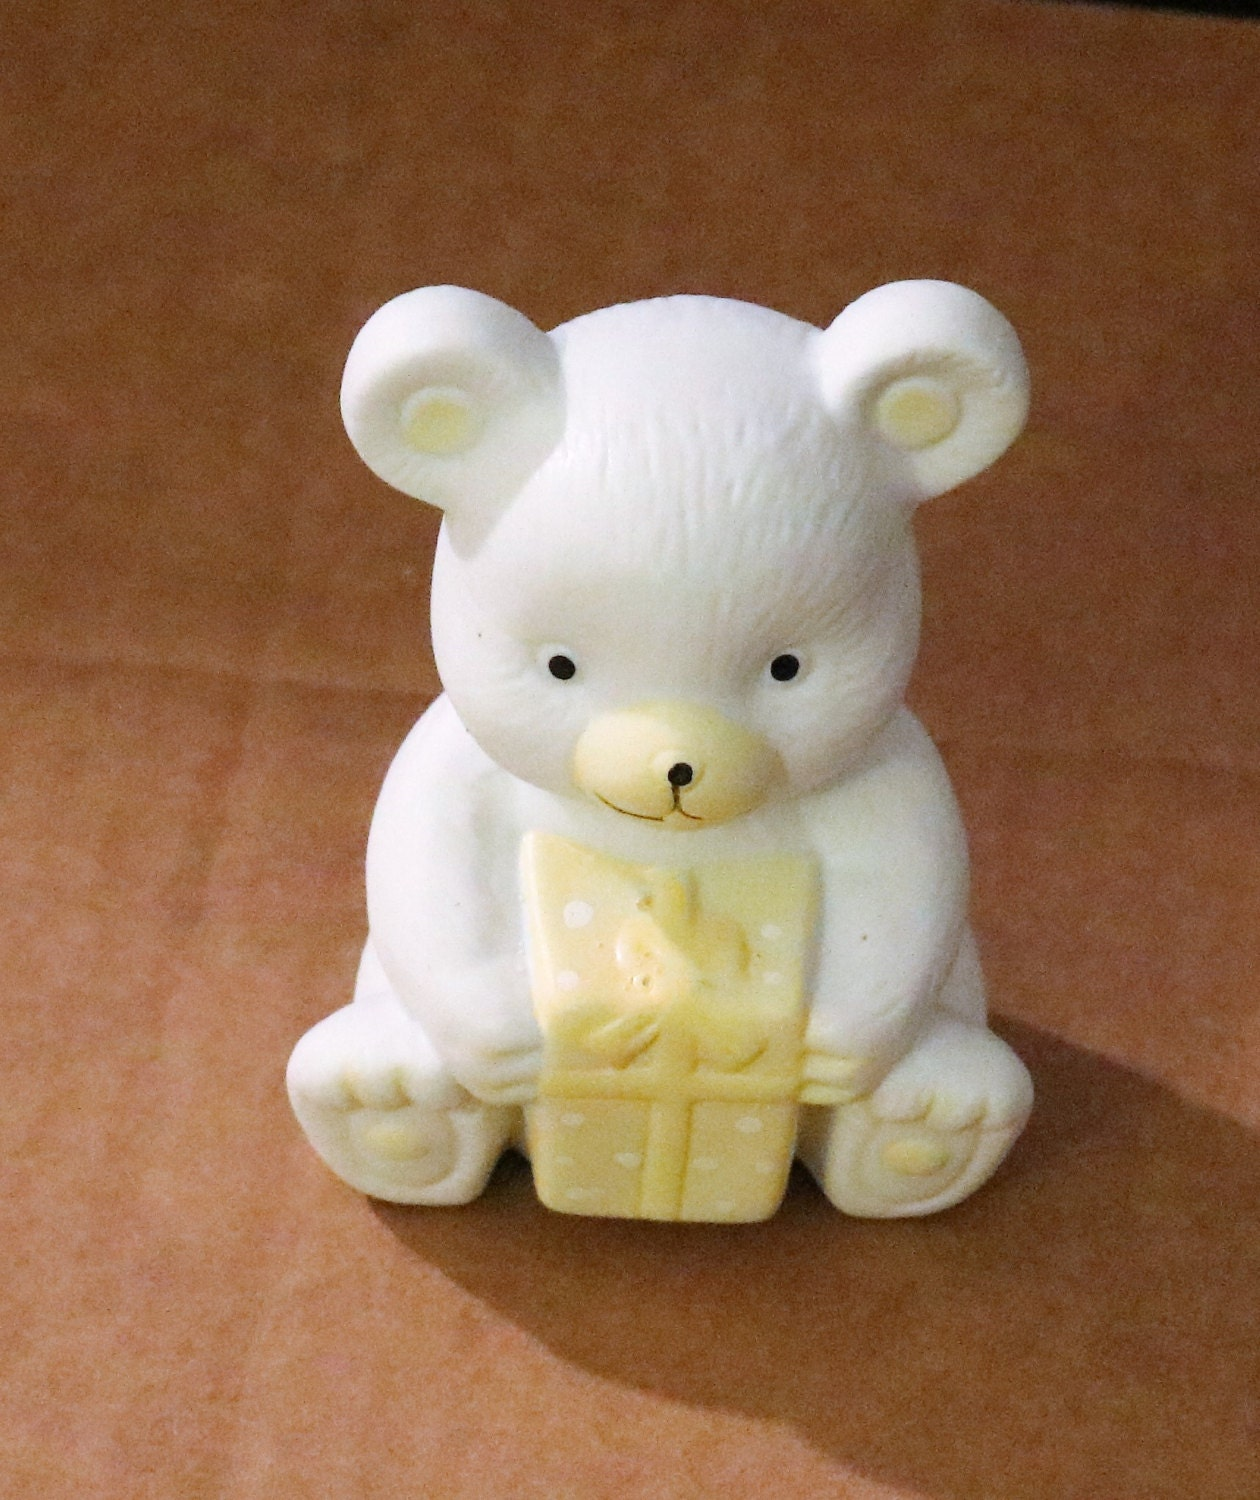 Vintage New White Teddy Bear Ceramic Statue With Yellow Gift